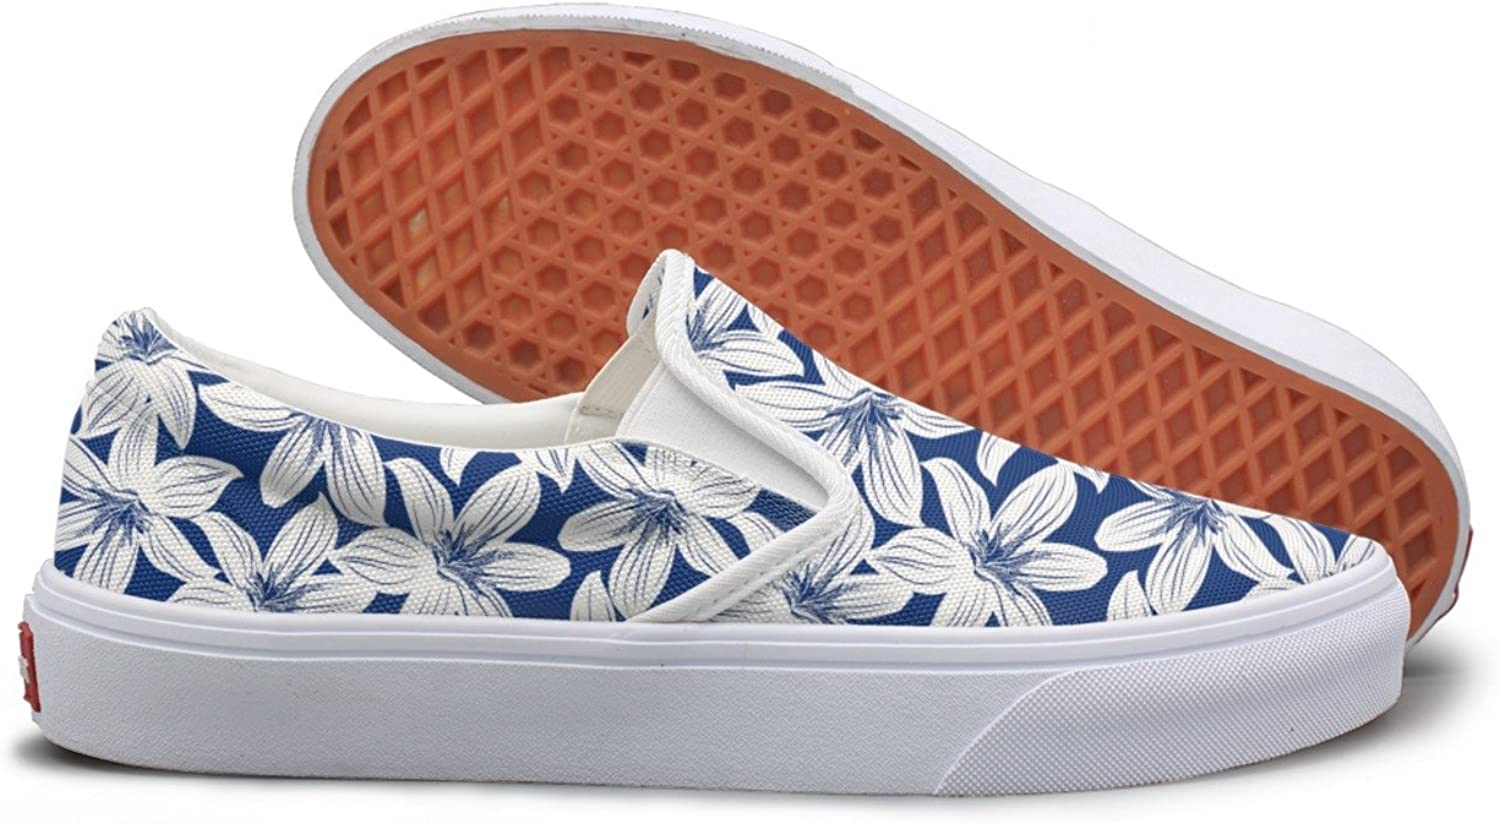 SEERTED Navy and White Tropical Hibiscus Floral Comfortable Sneakers for Standing All Day